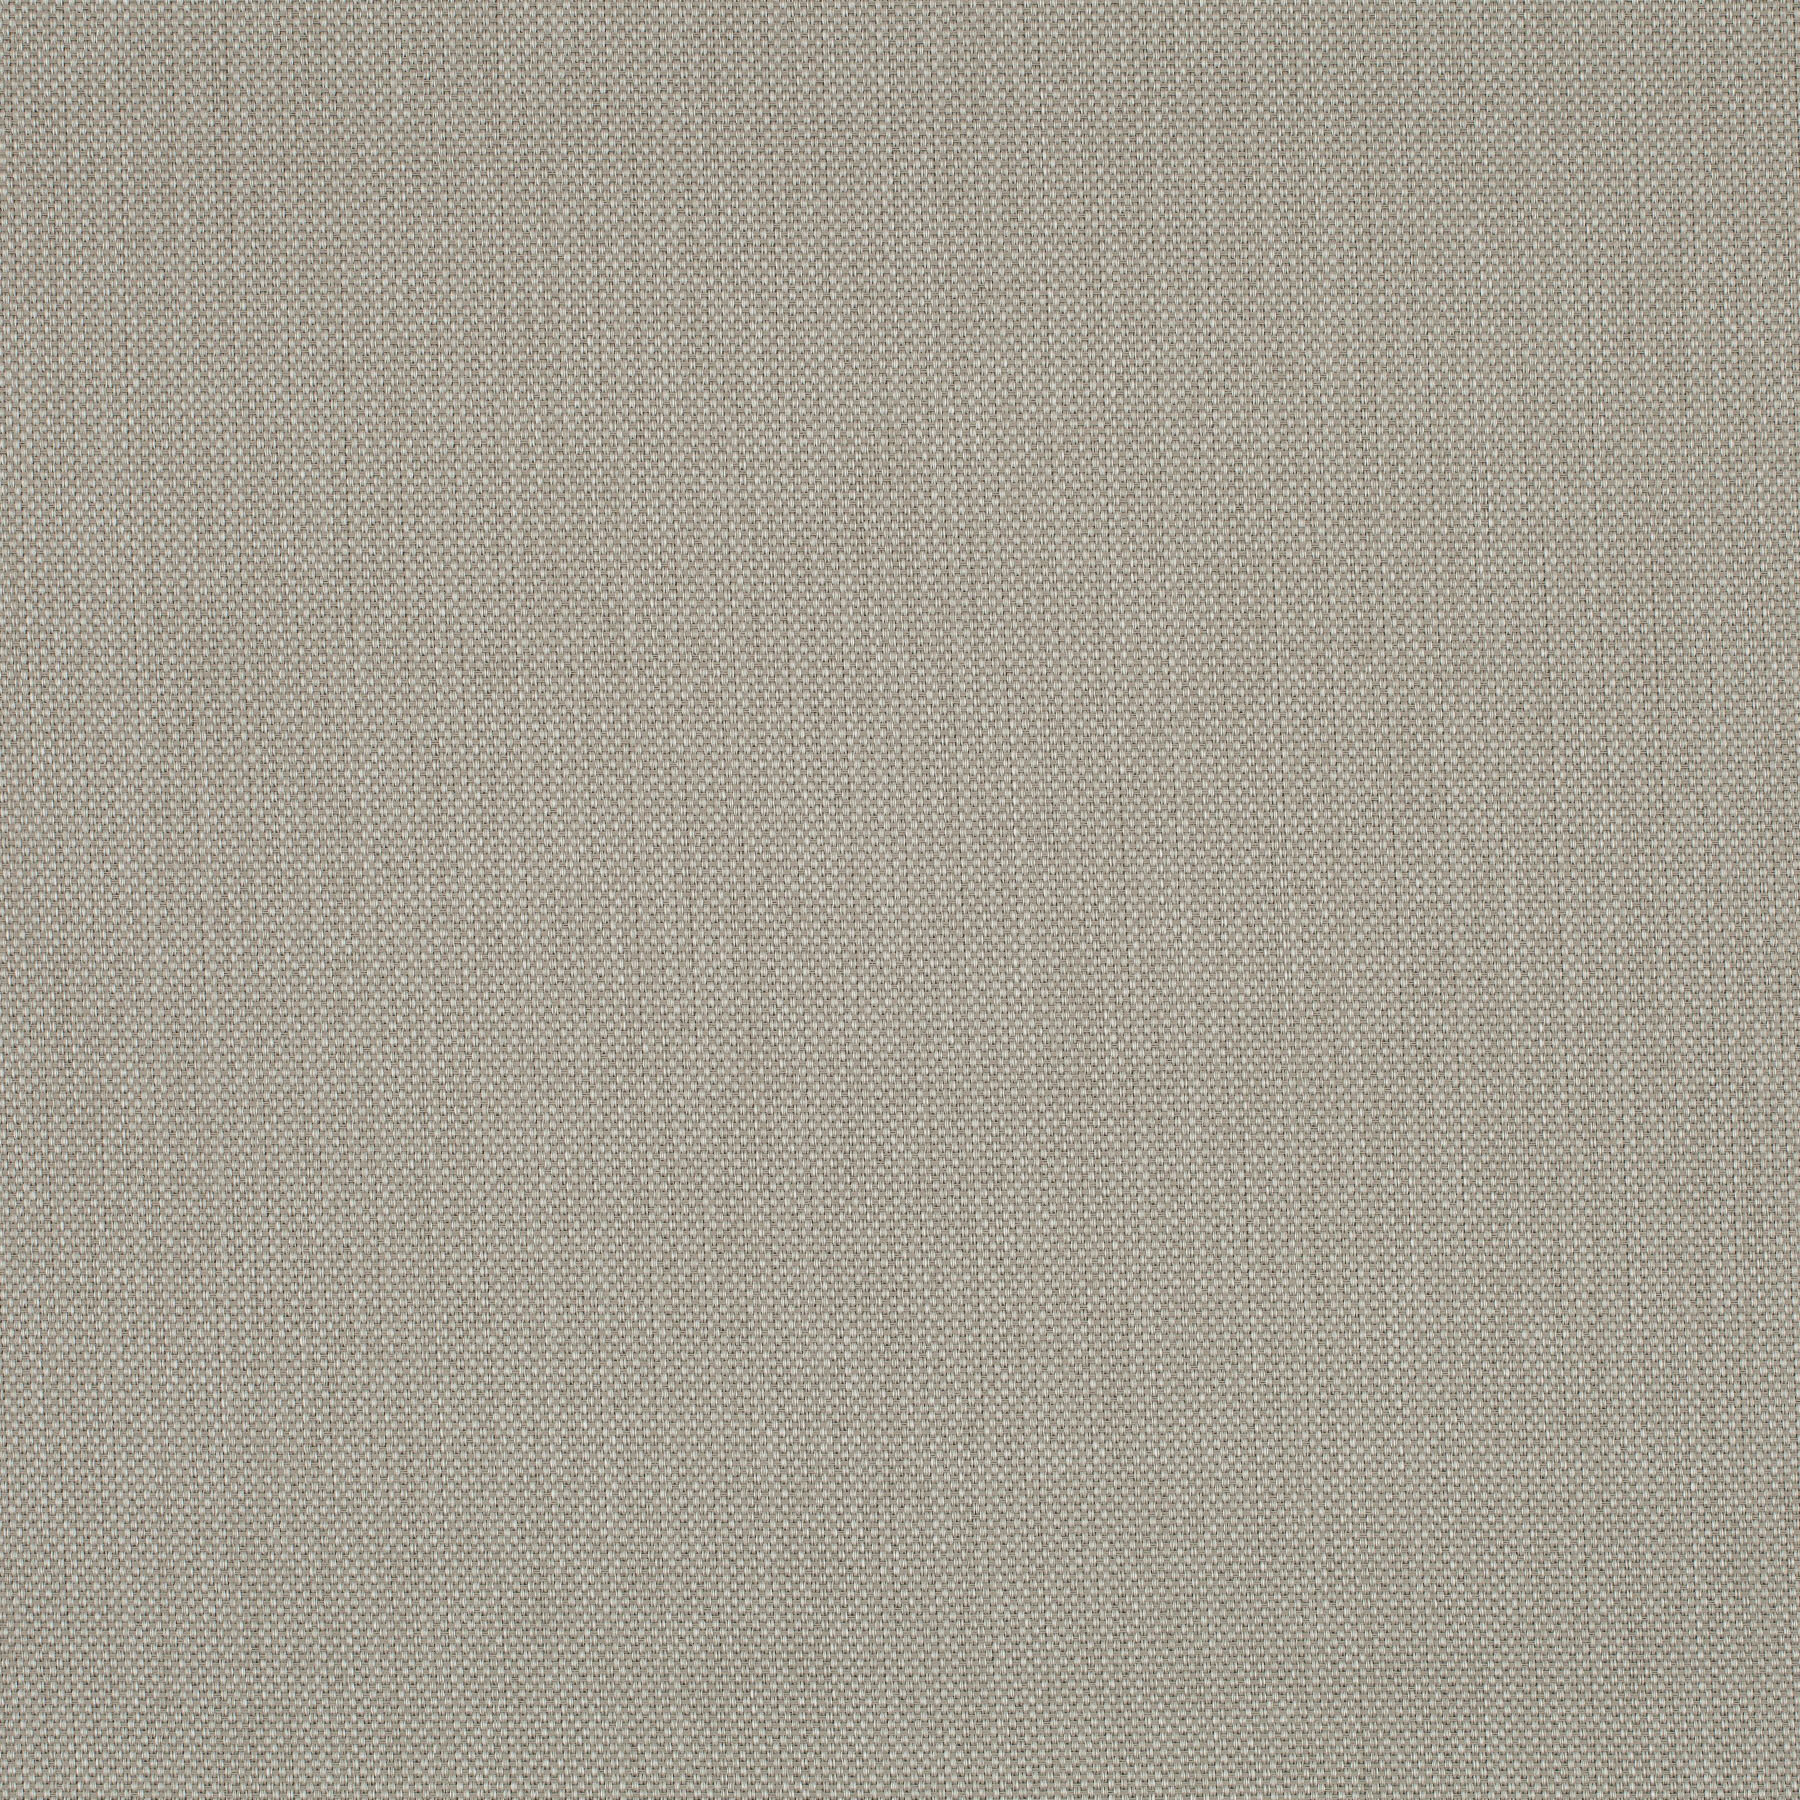 Decoration fabric consul 1 6759 093 jab anstoetz for Consul high availability